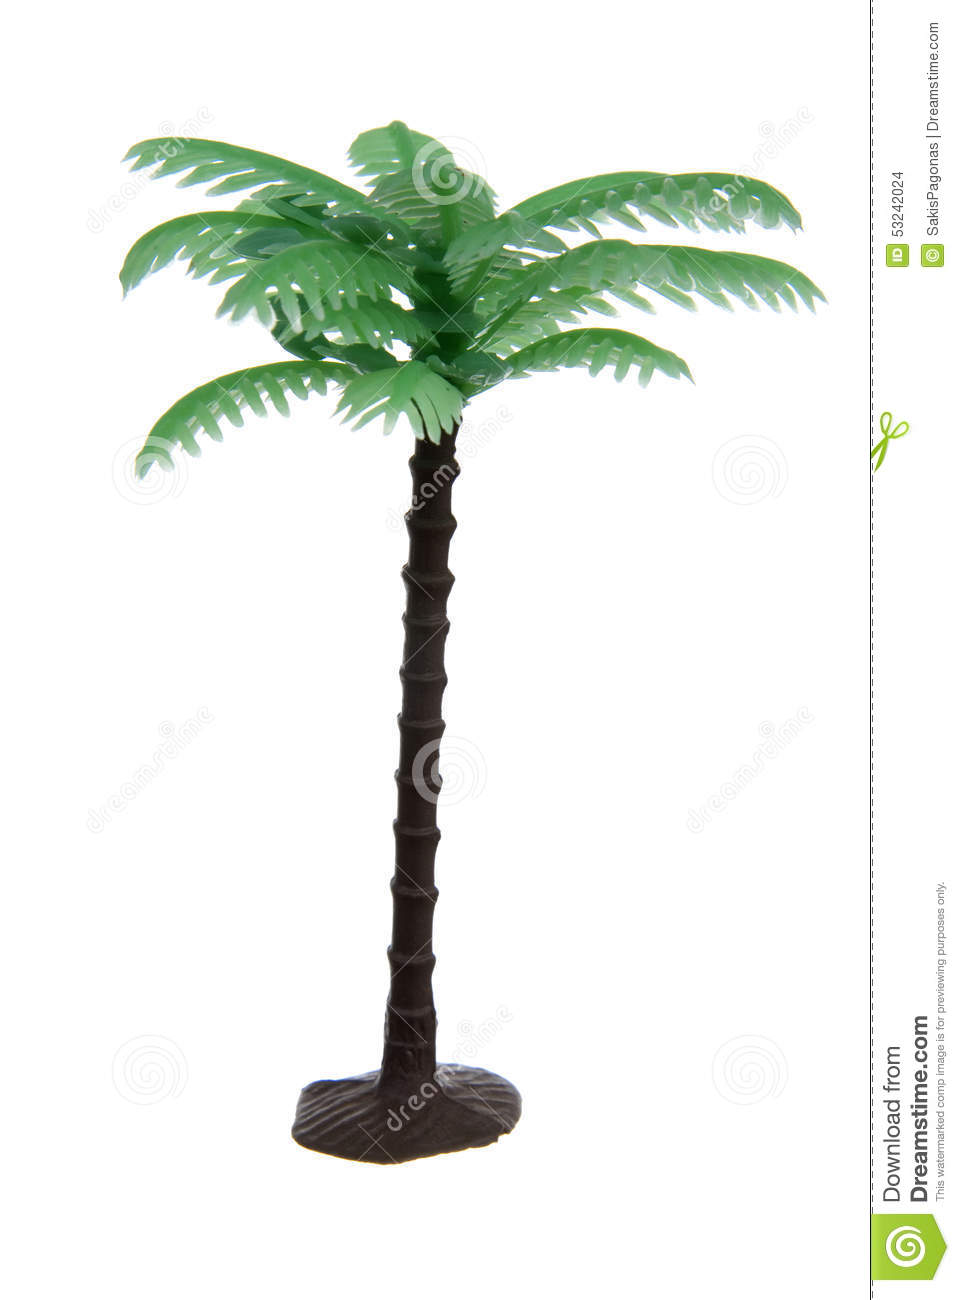 Plastic palm tree toy stock photo image of plant stem for Arbre maison jouet